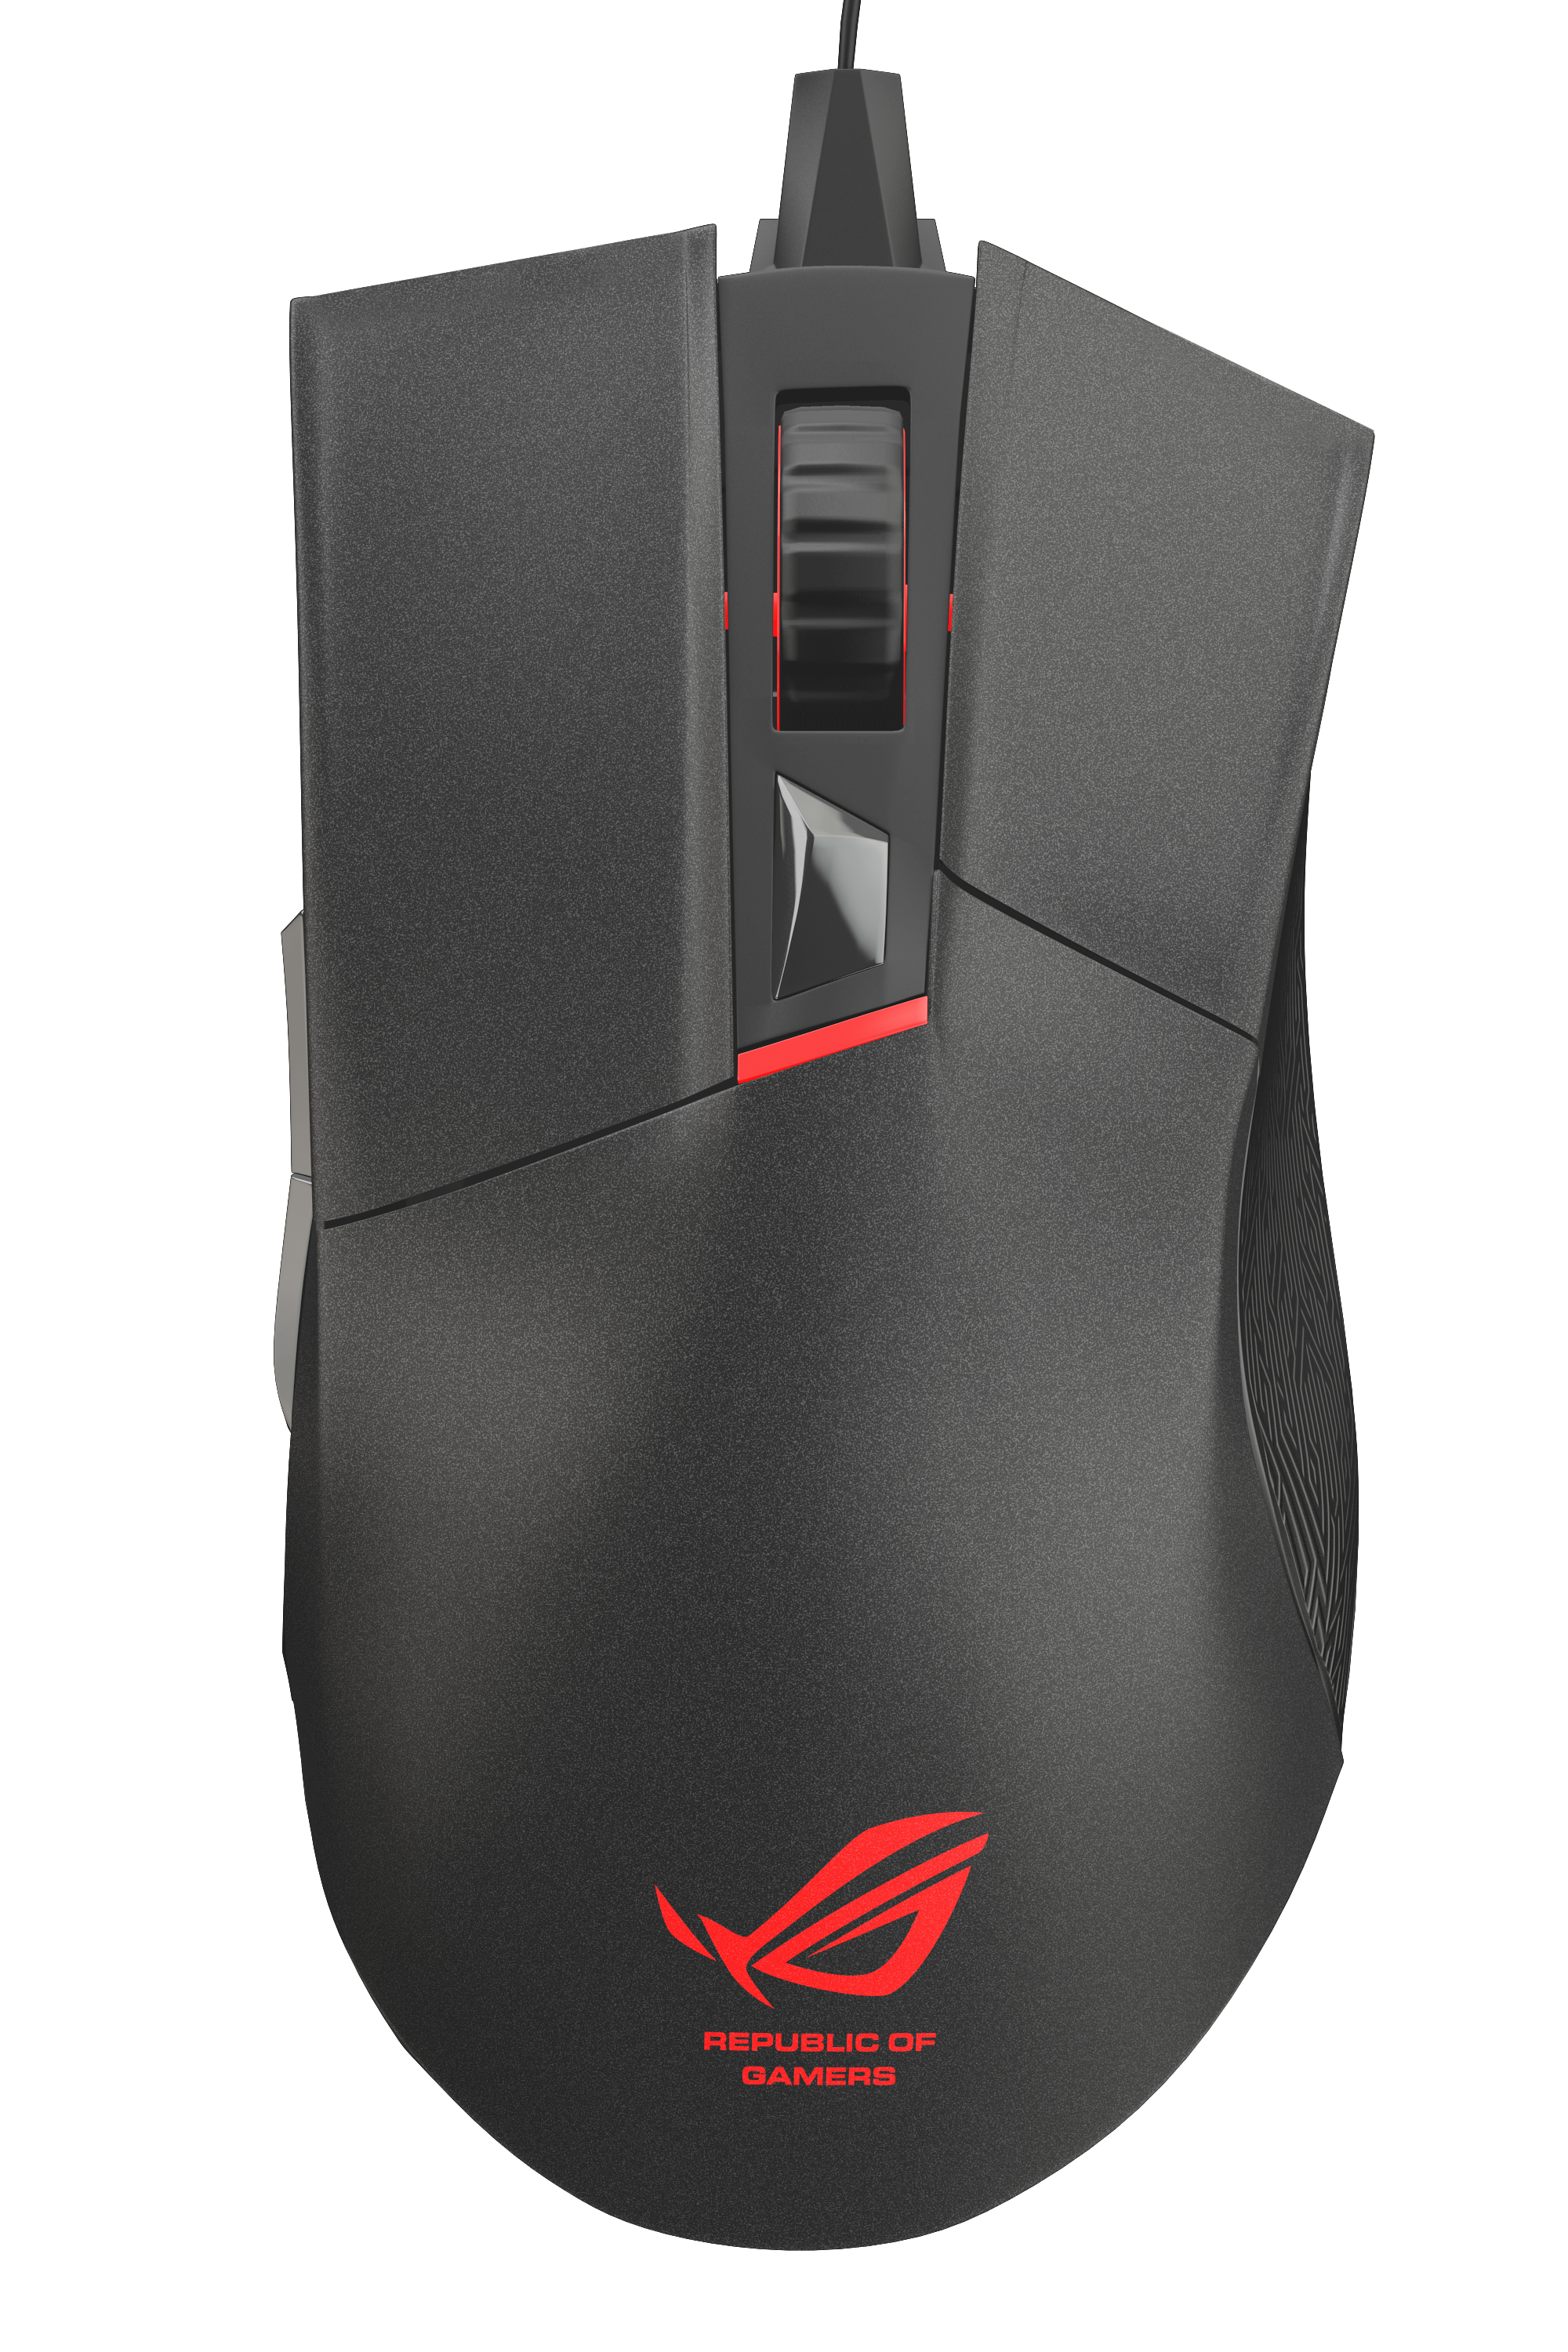 Gaming Peripherals from ASUS Launched: The Gladius Mouse ...